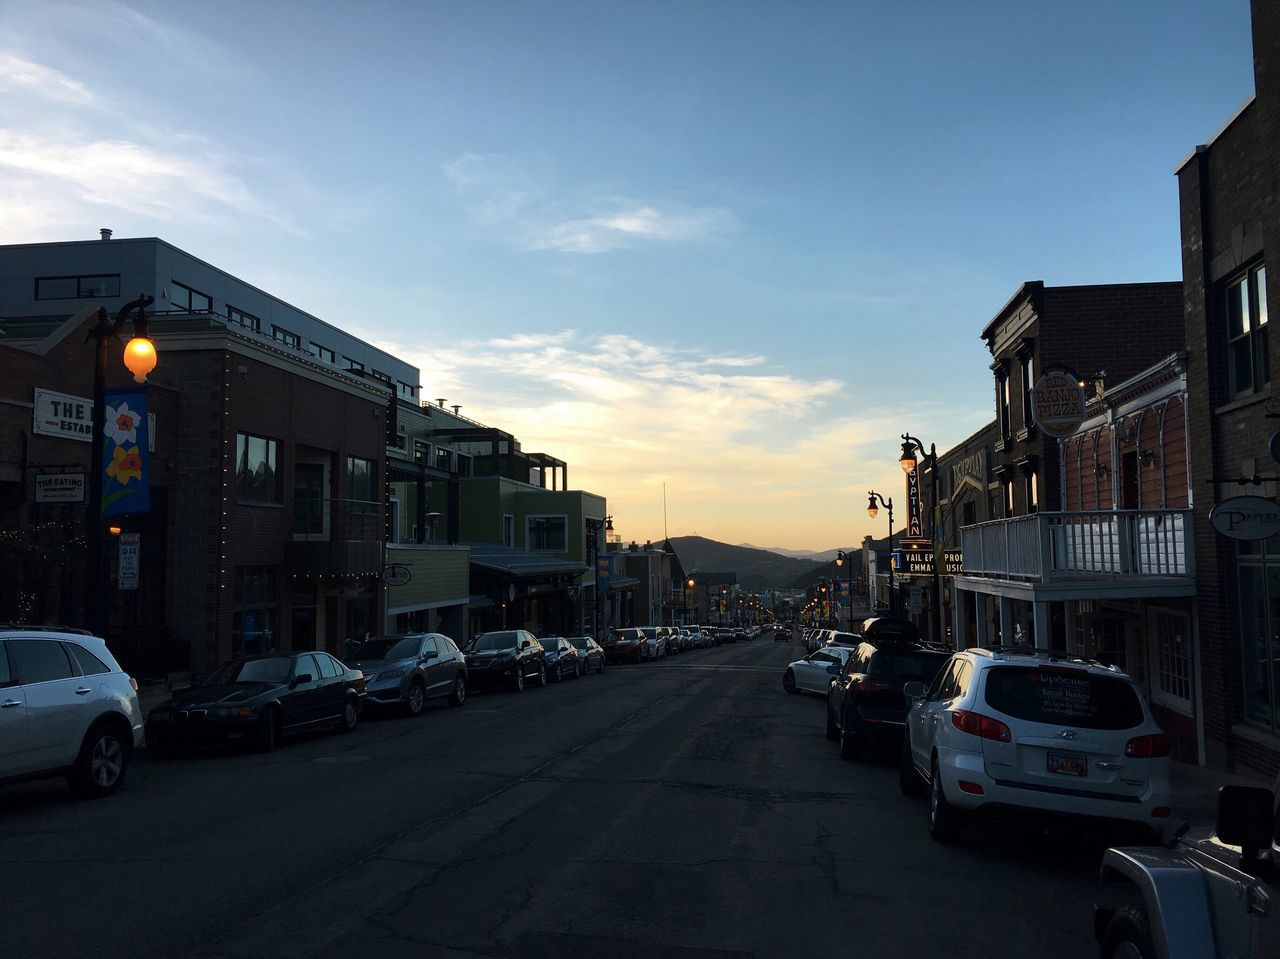 another nice evening out there tonight. walking back from dinner down Main Street. Park City, Utah